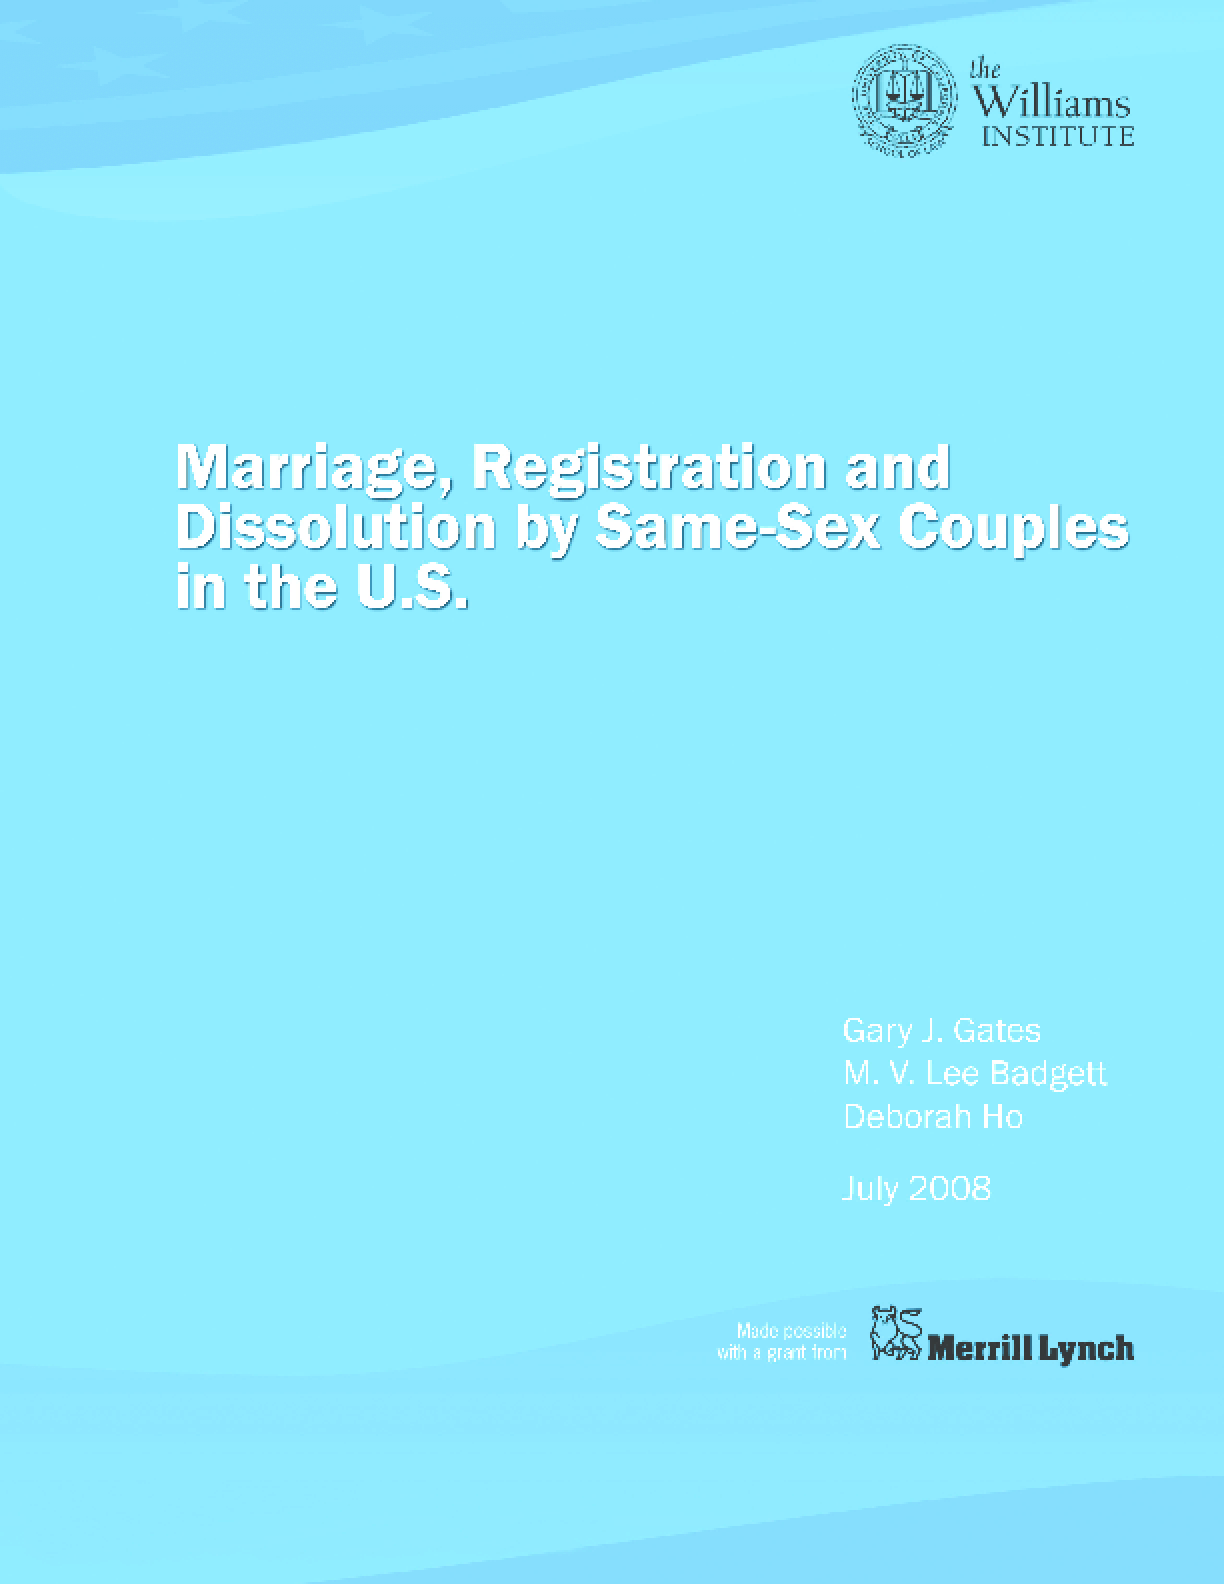 Marriage, Registration and Dissolution by Same-Sex Couples in the U.S.